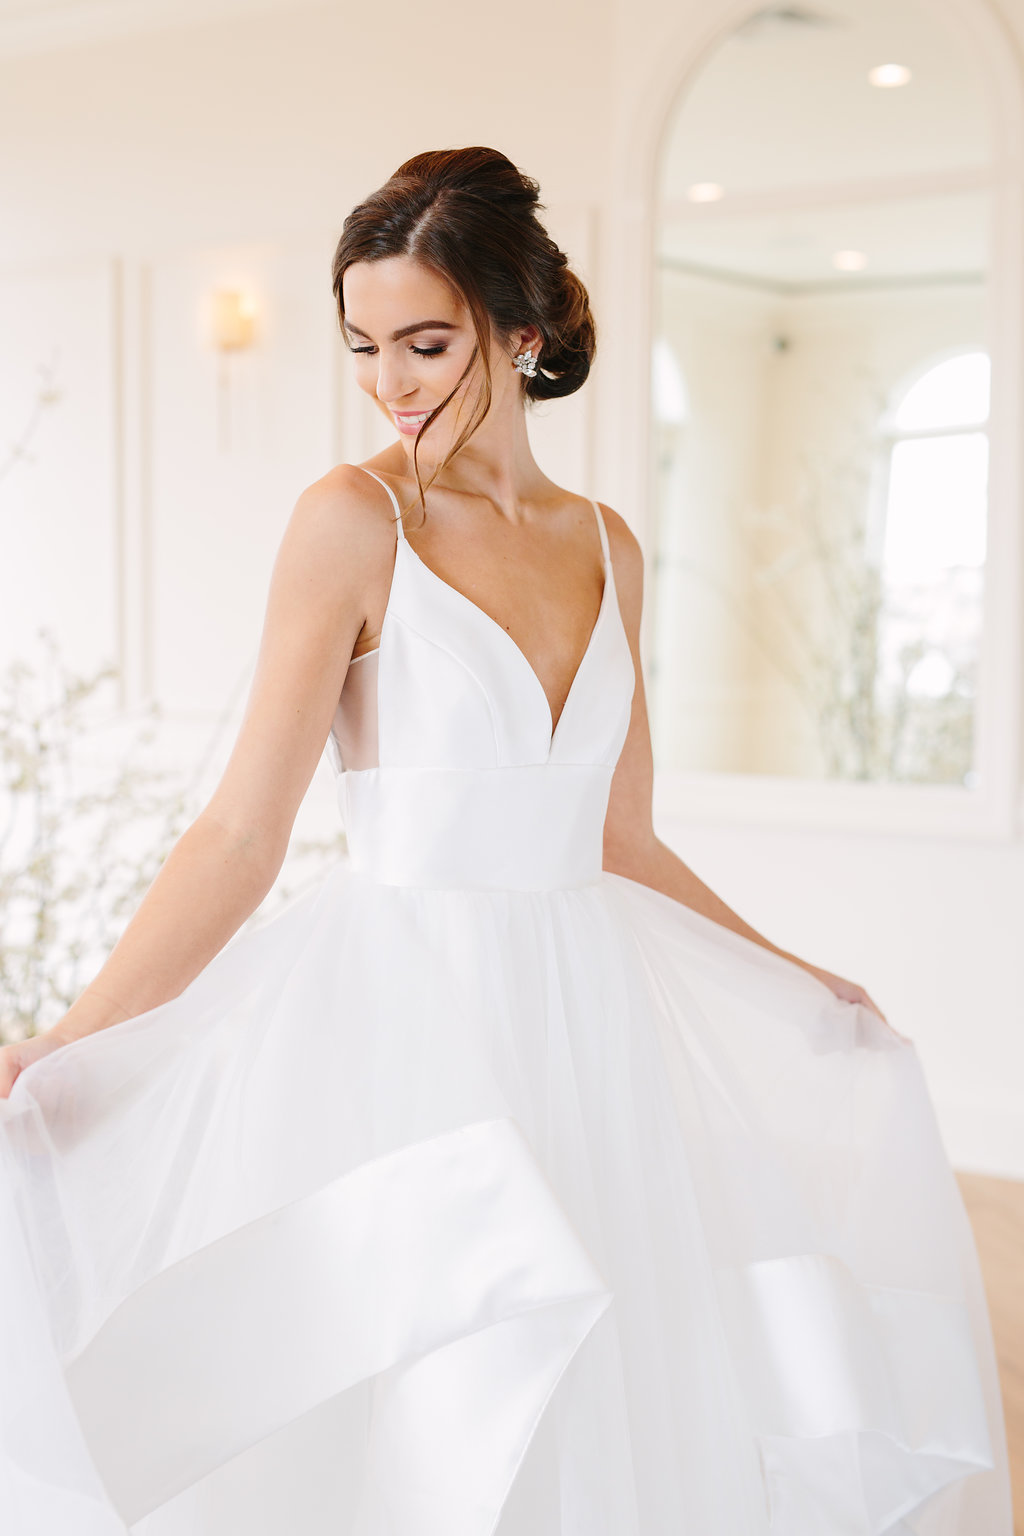 bride in wedding dress spaghetti strap low cut bodice full ball gown skirt a line dress